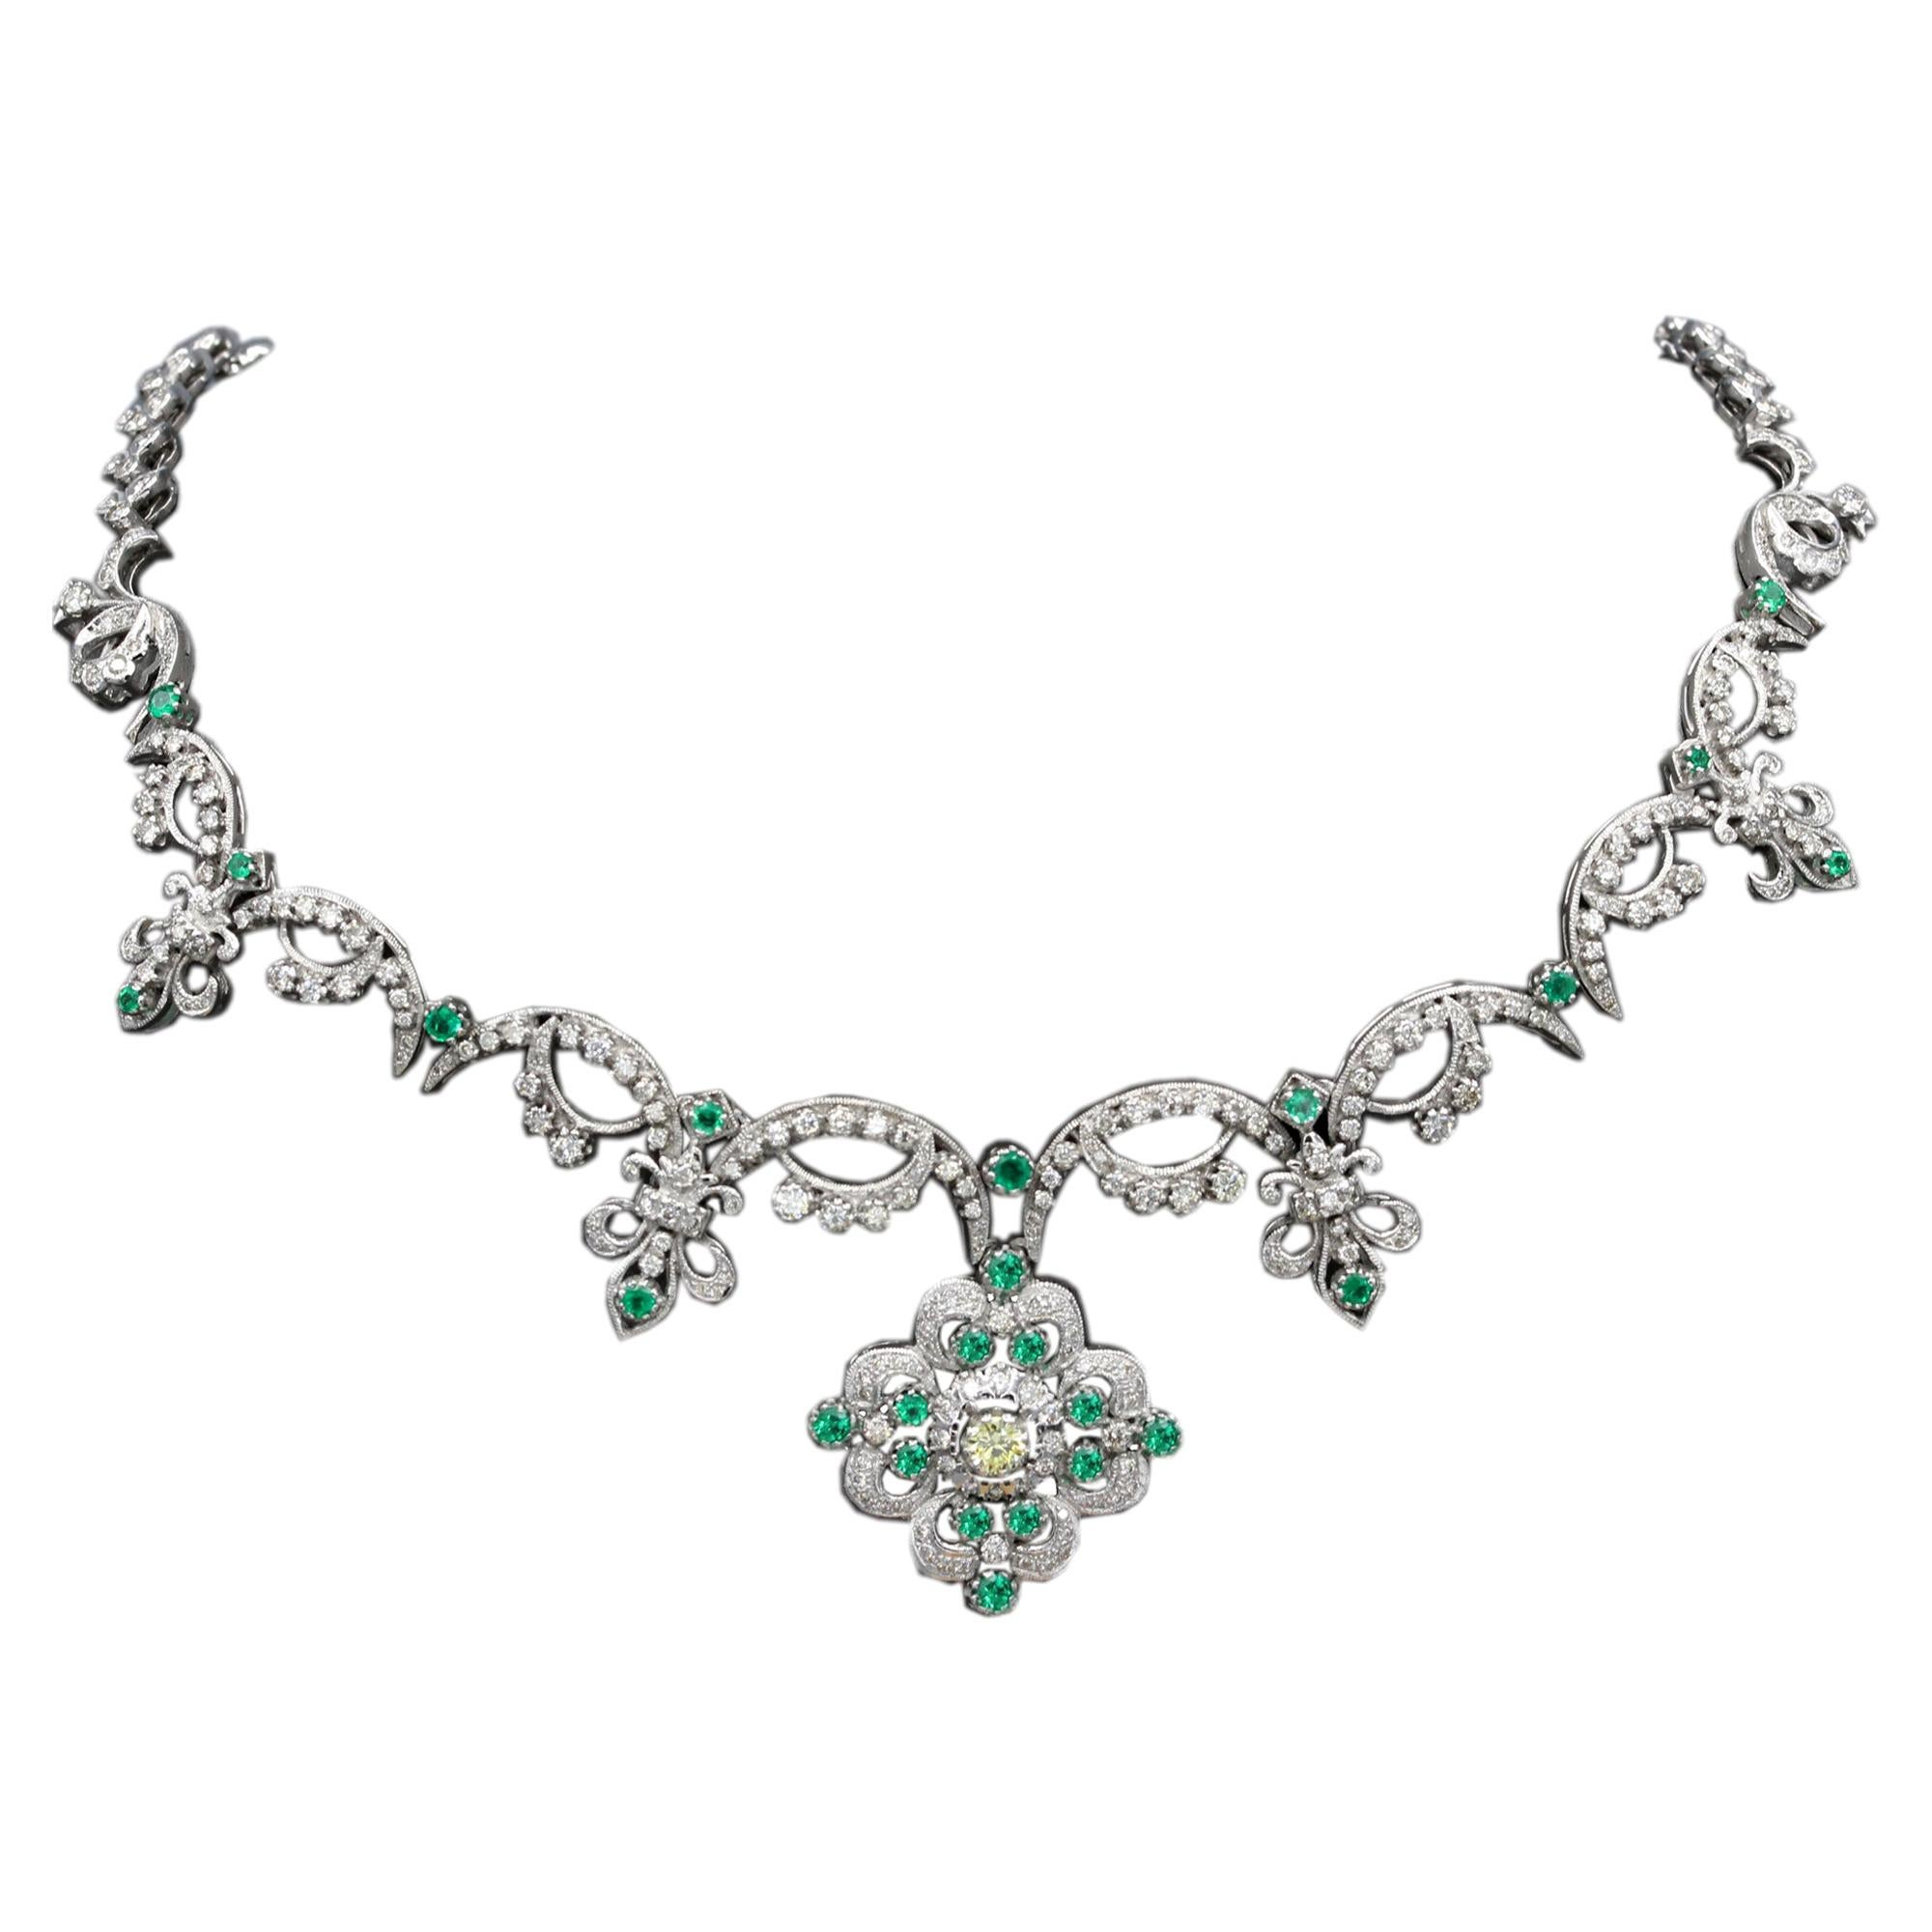 Victorian Style Necklace 18 Karat White Gold Diamonds and Emerald